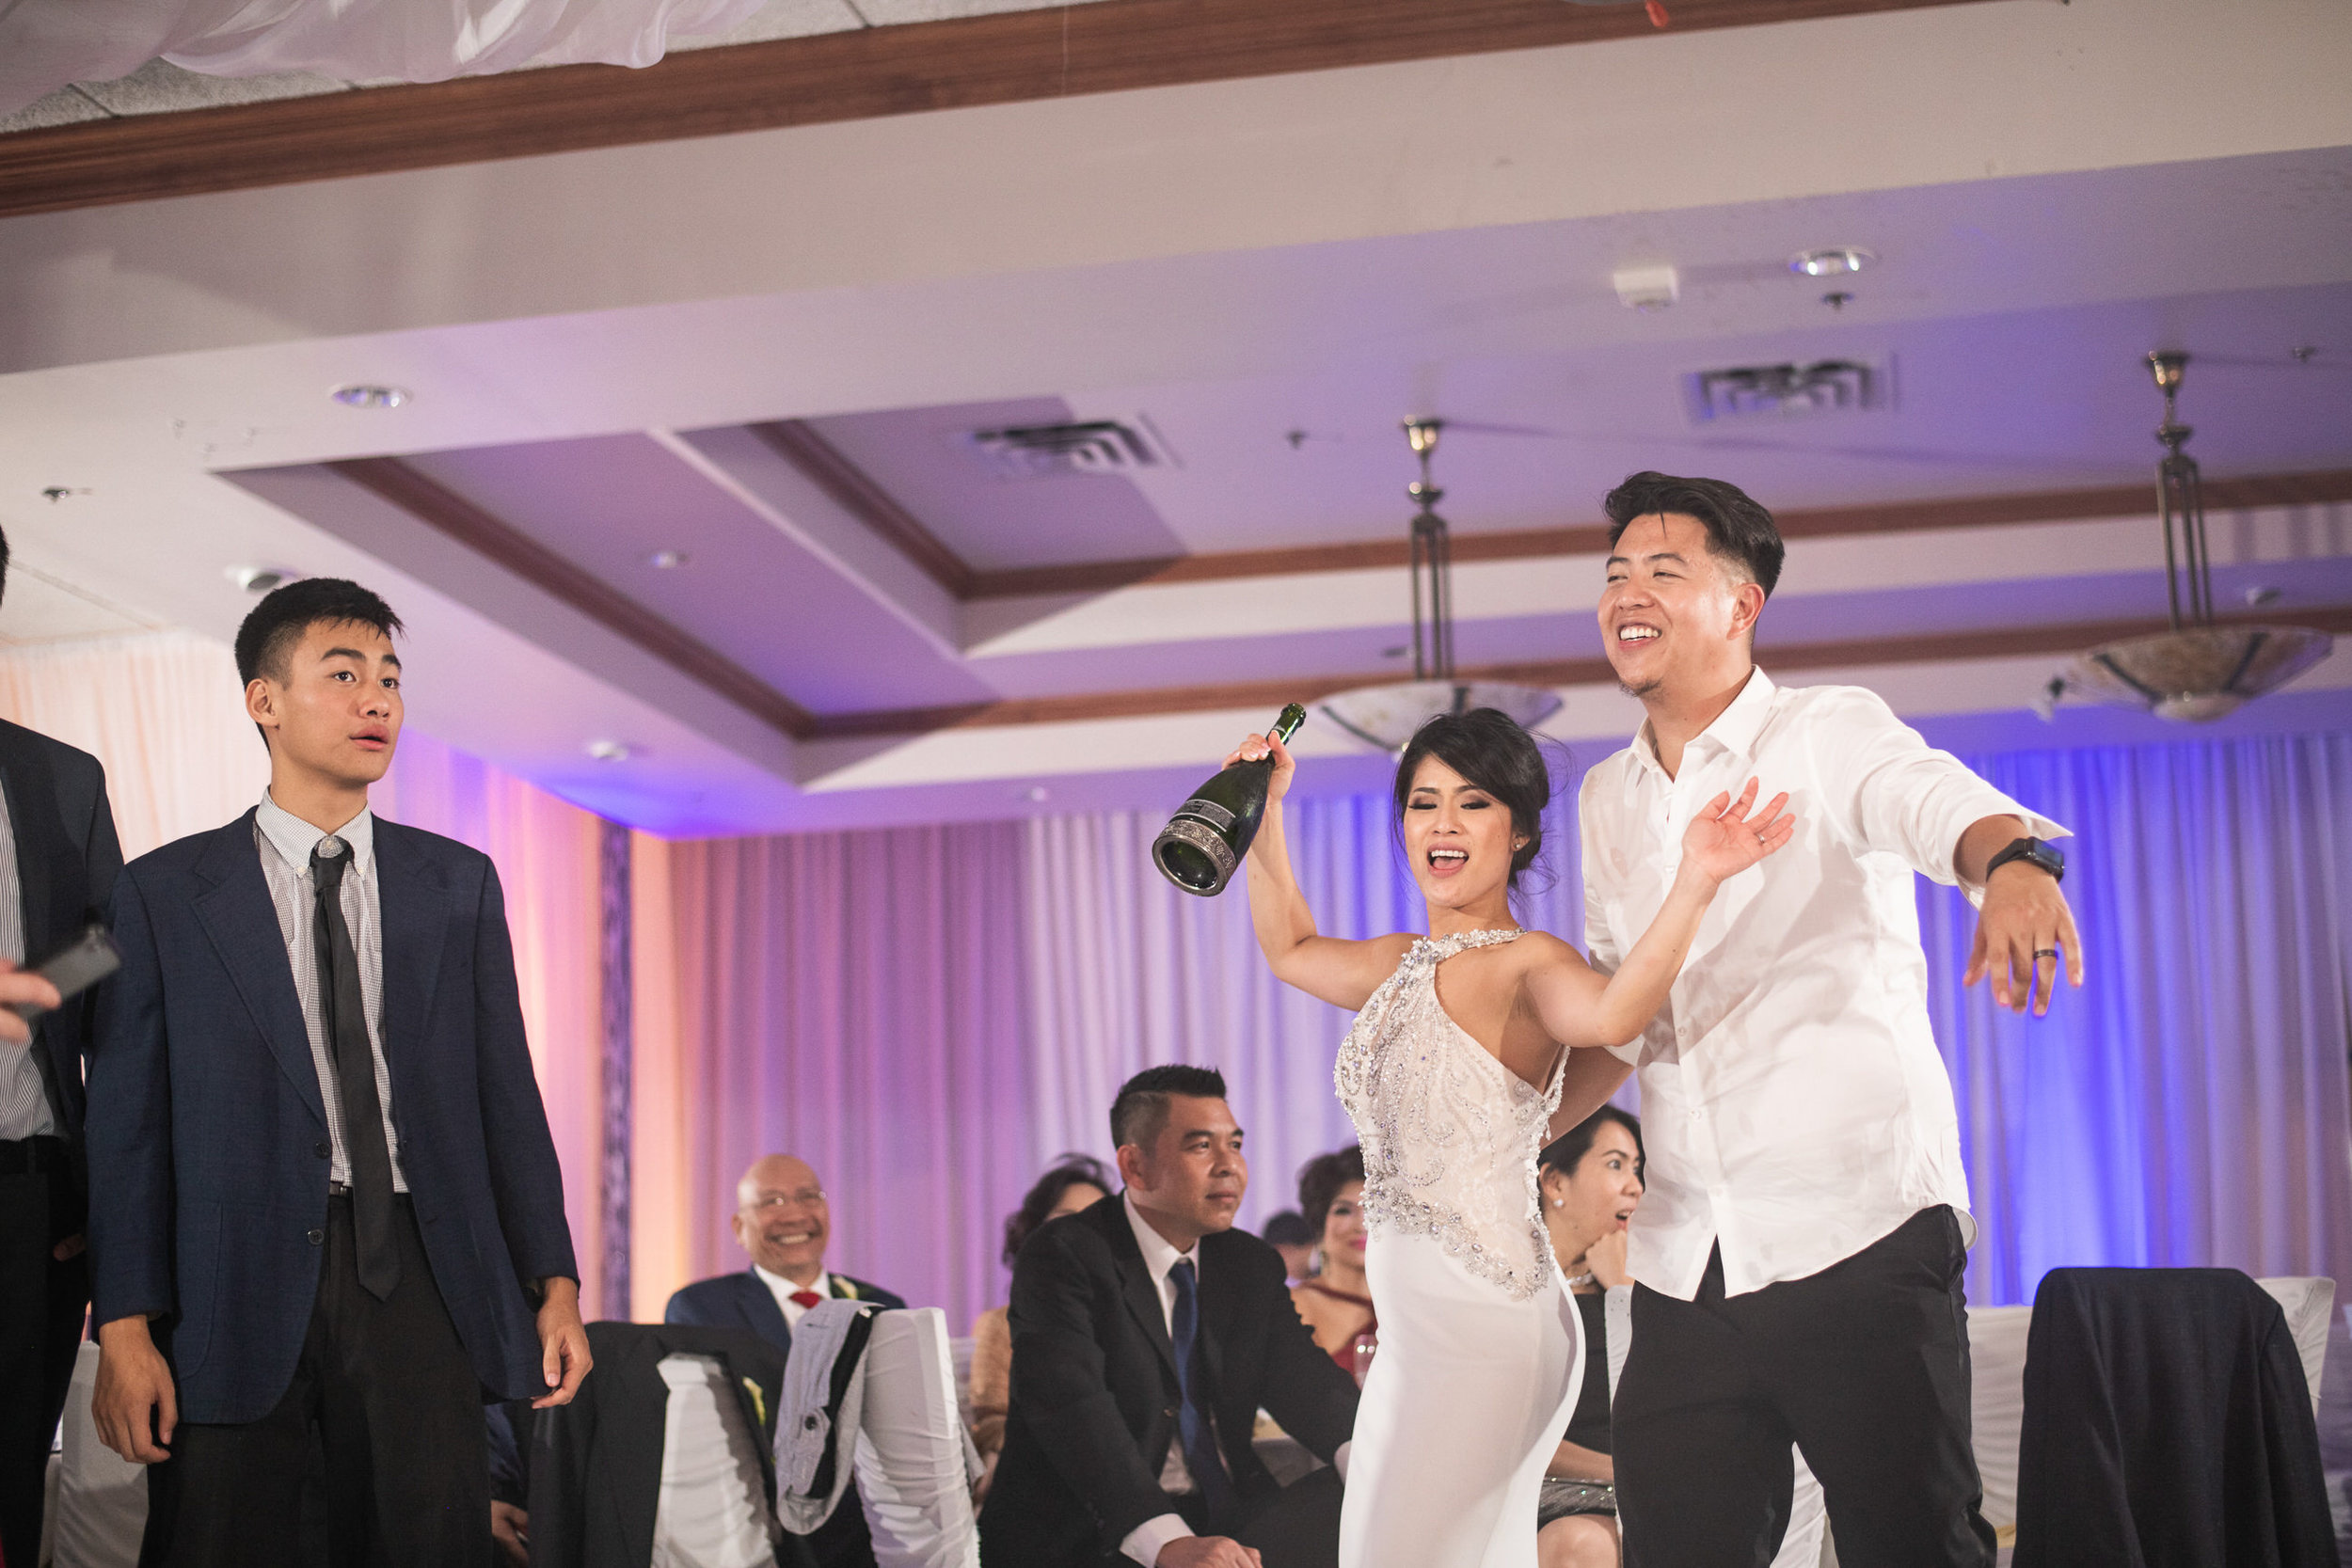 Dream_Wedding_Thanh_Thanh-3824.jpg